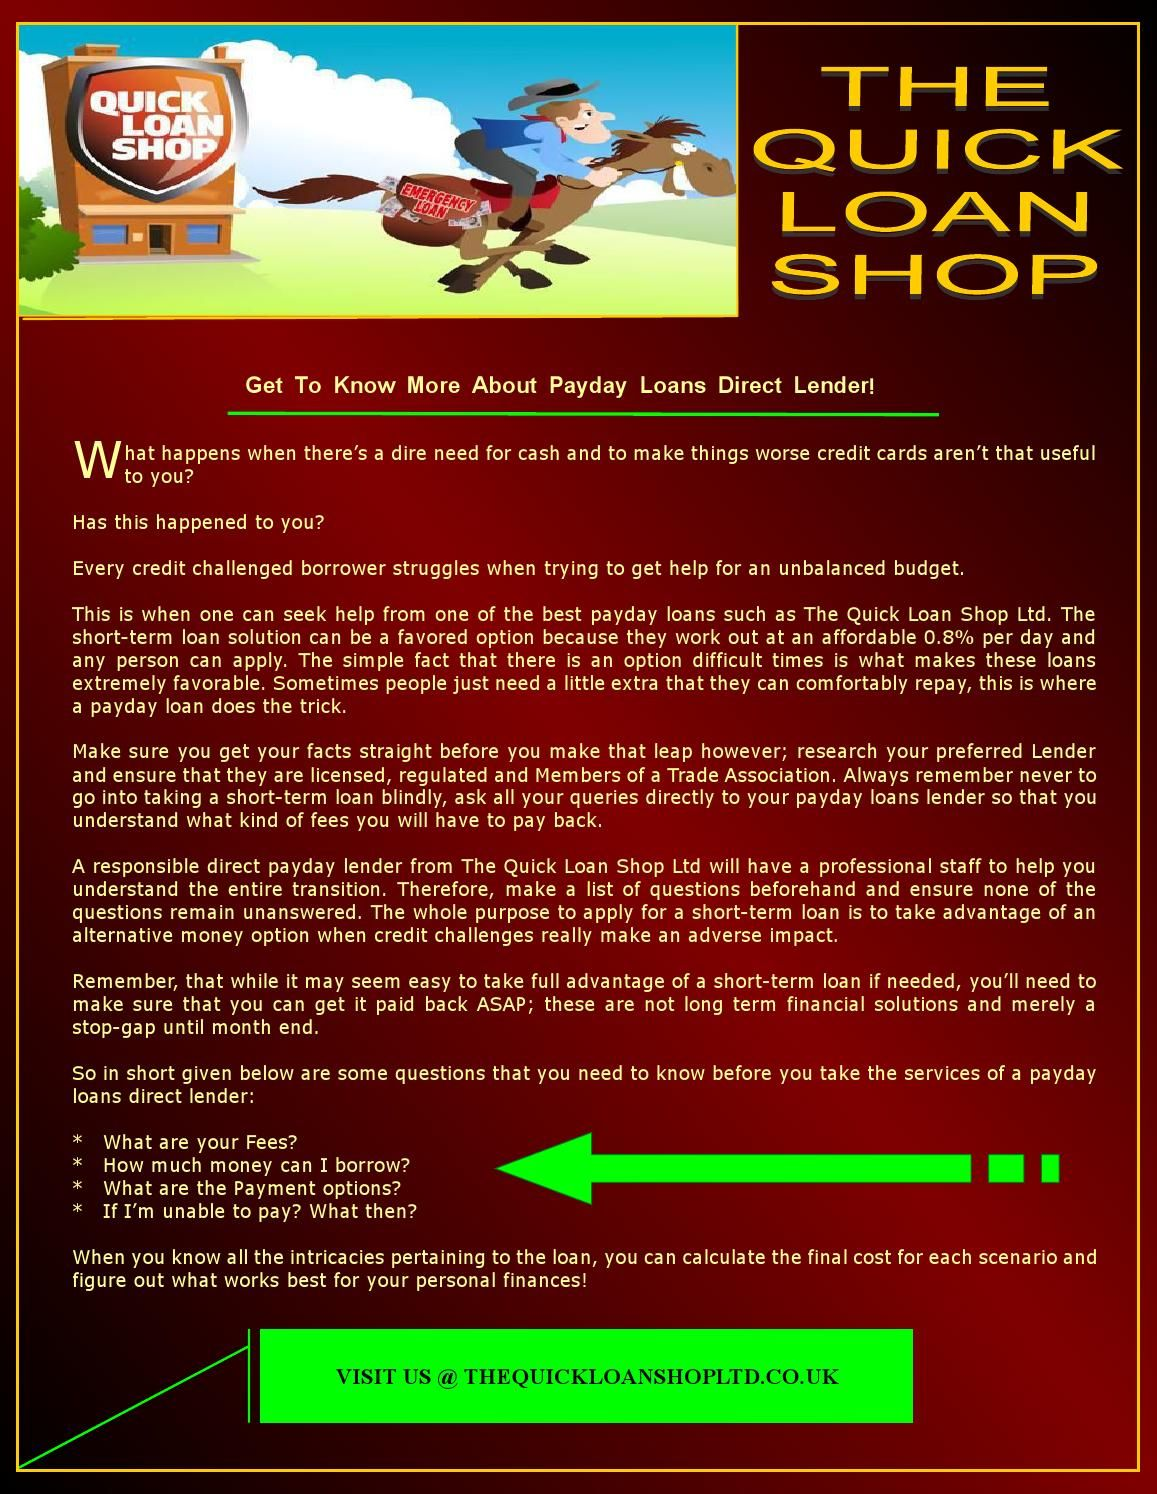 Cash club loans image 1